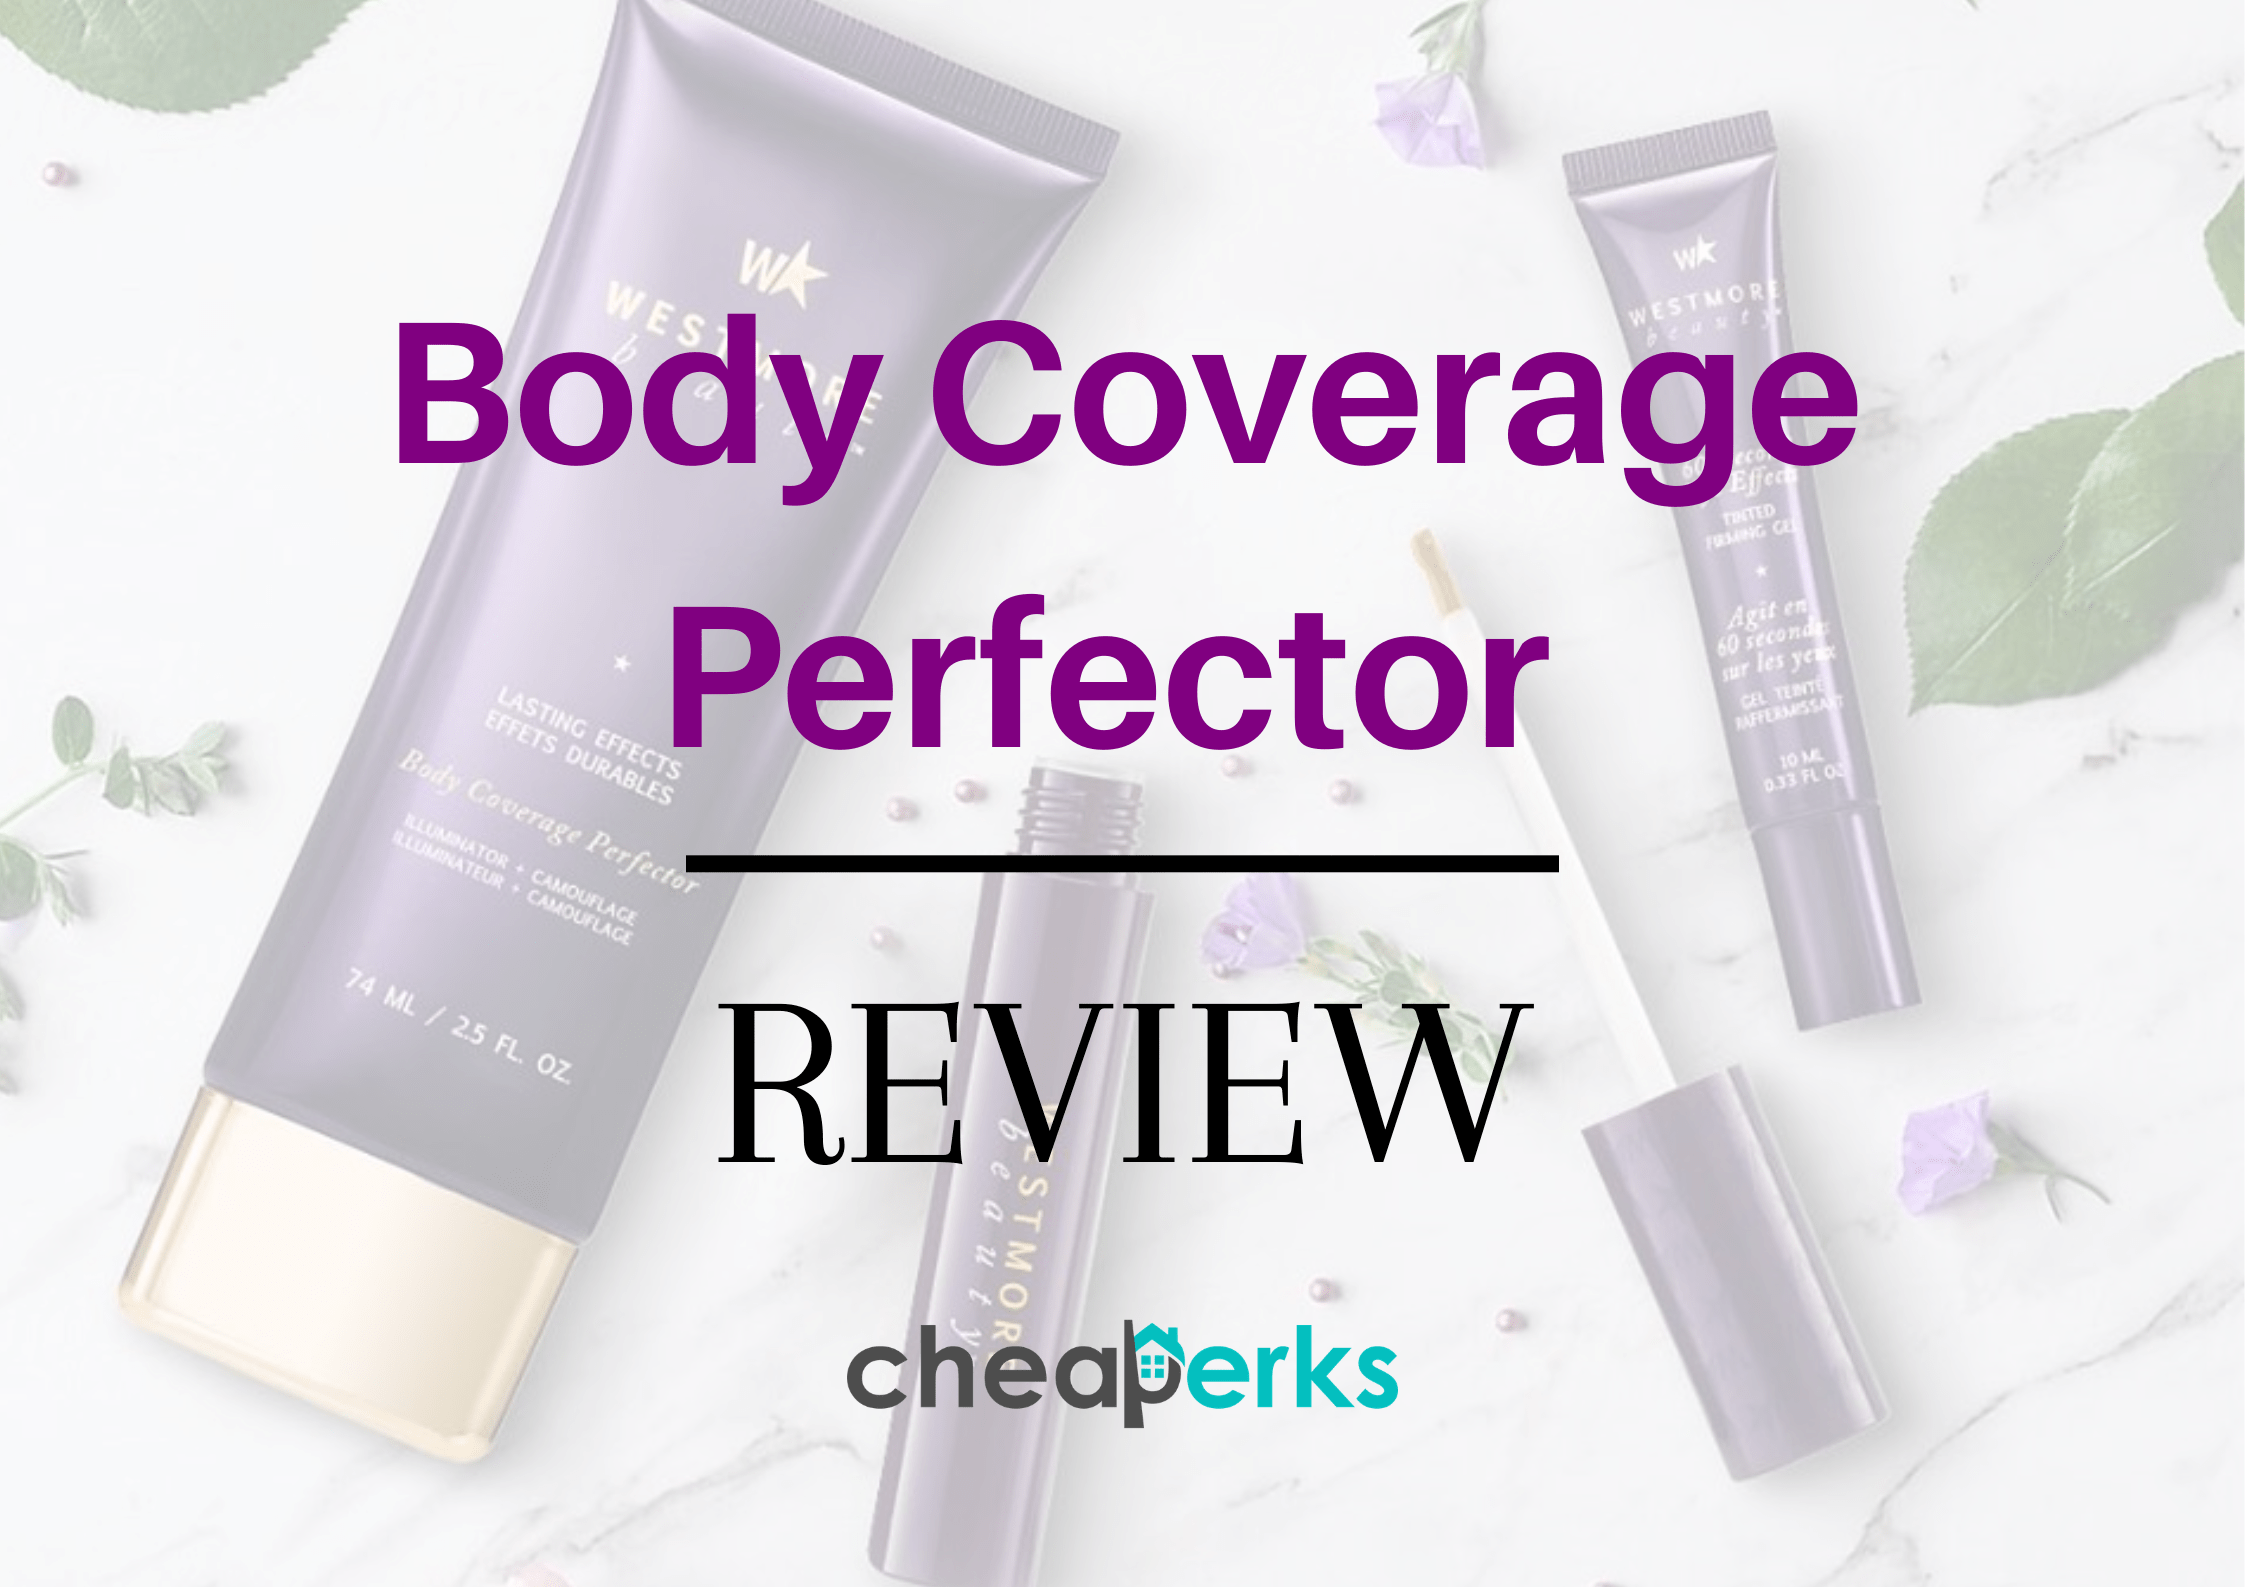 Body Coverage Perfector Reviews